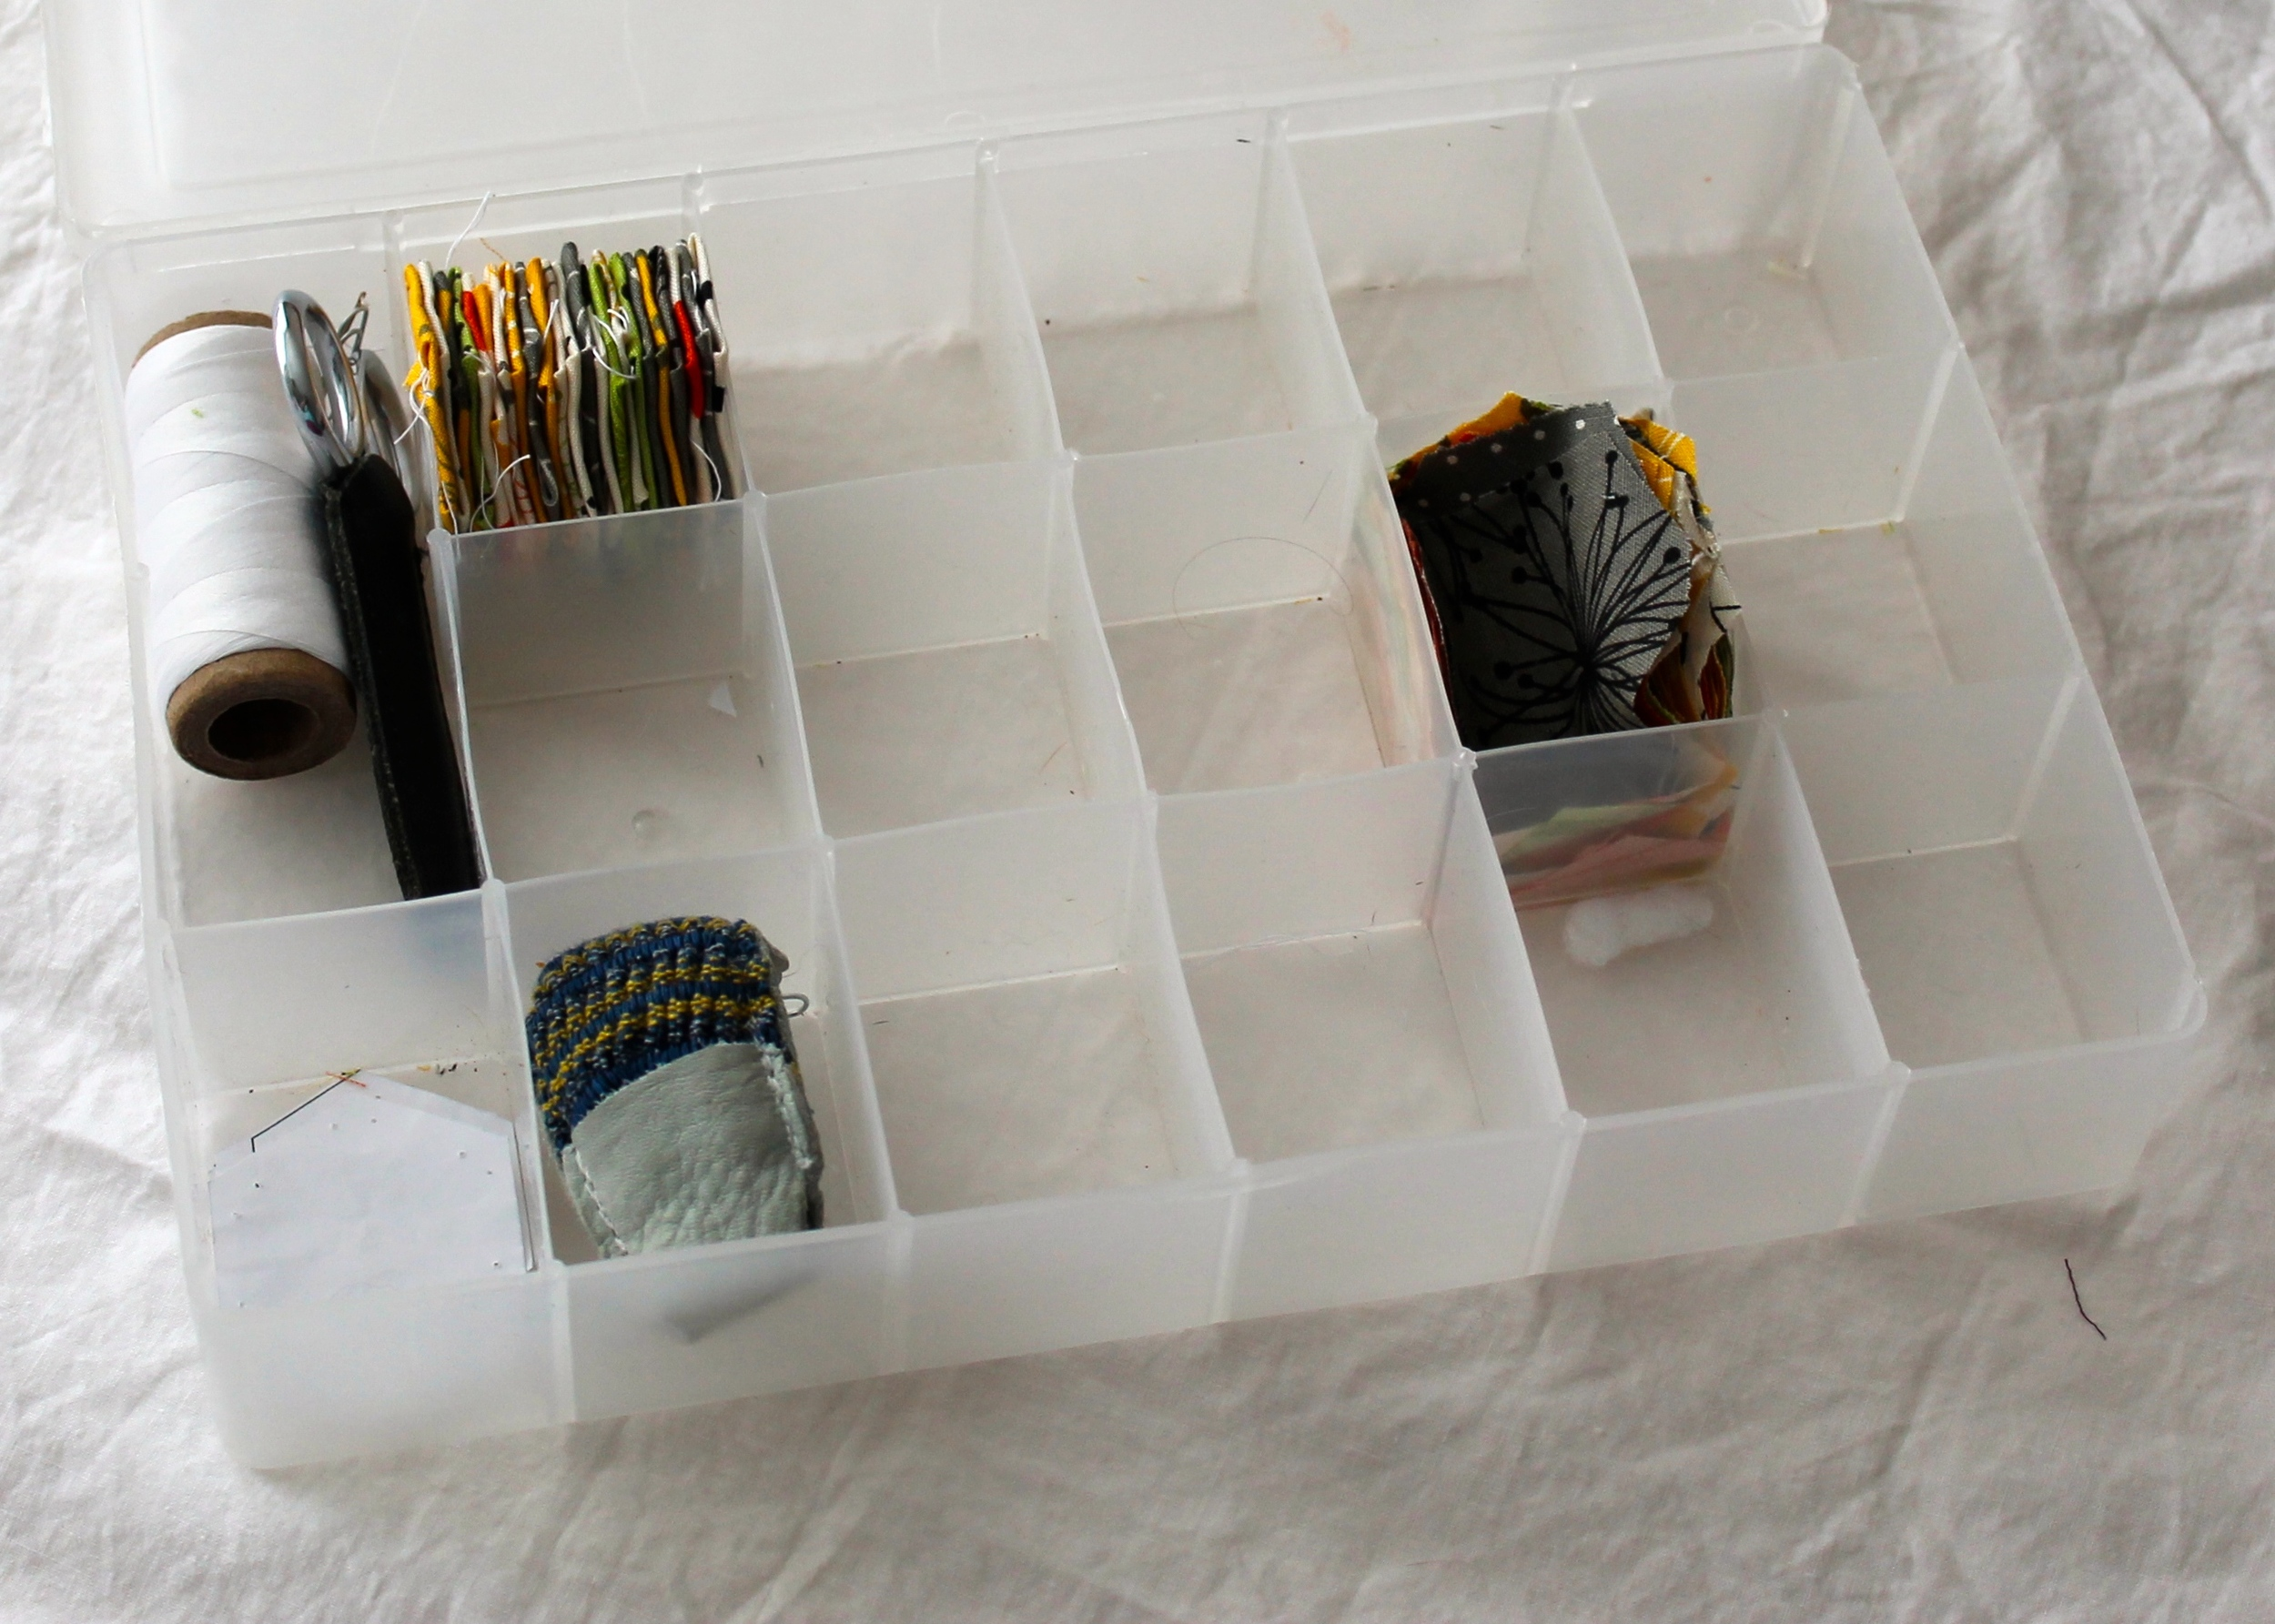 paper pieced hexagons, thread, and a thimble in a carrying case